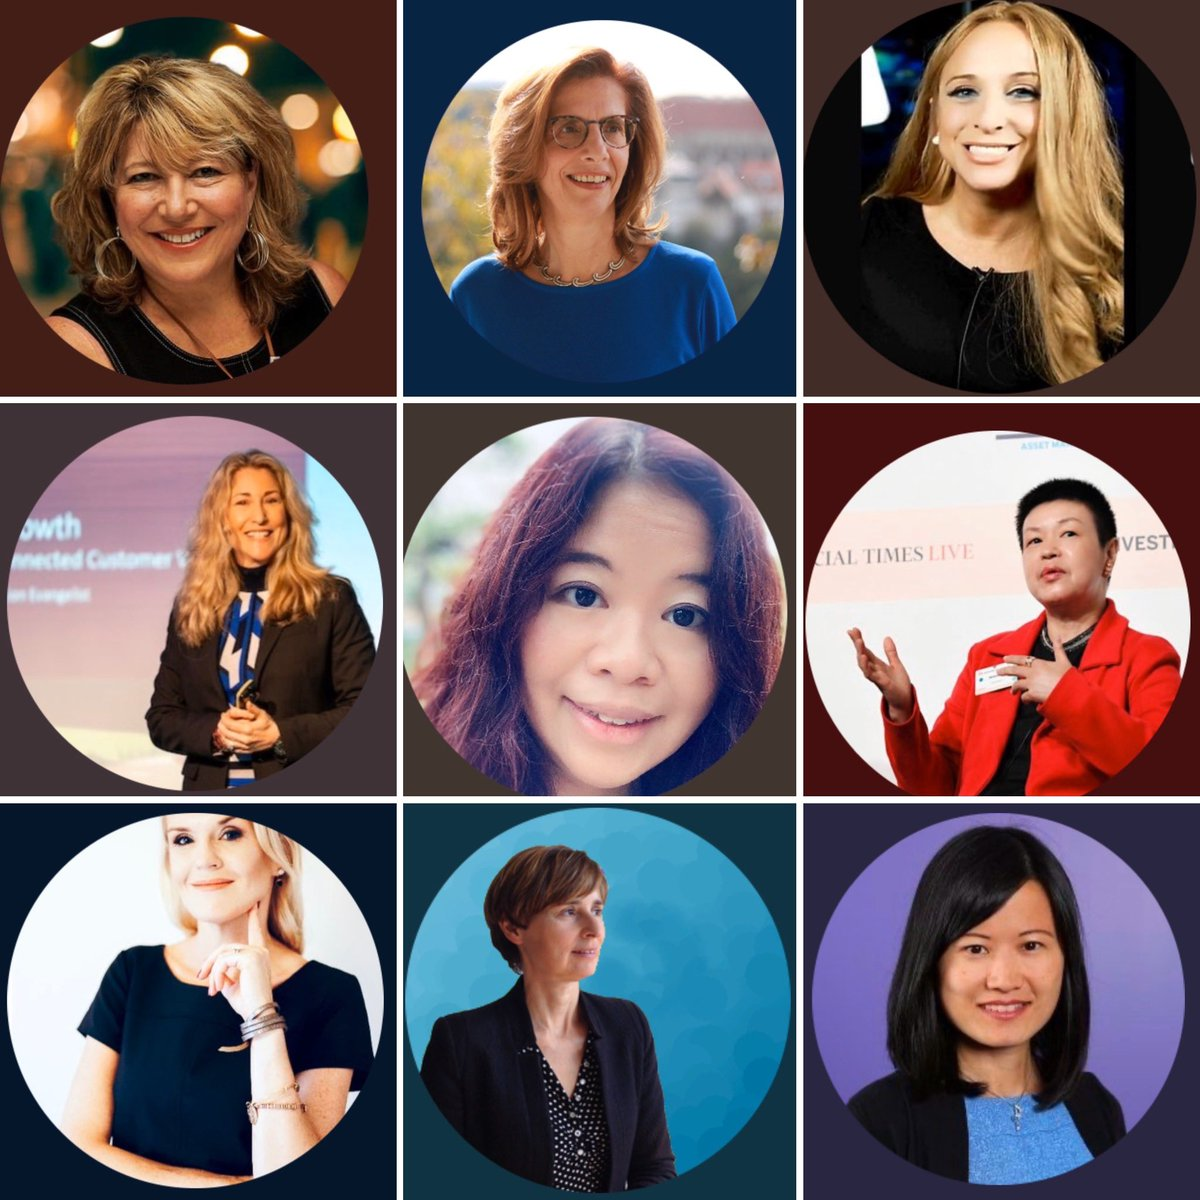 """So many women inspire me daily on #socialmedia. Honored to be recognized by @Onalytica as a """"Women in Finance: Top 100 Influencers"""" with this incredible community. Congrats 👏 ⤵️ onalytica.com/blog/posts/wom… @psb_dc @TheRudinGroup @helene_wpli @efipm @chboursin #WomeninBusiness"""